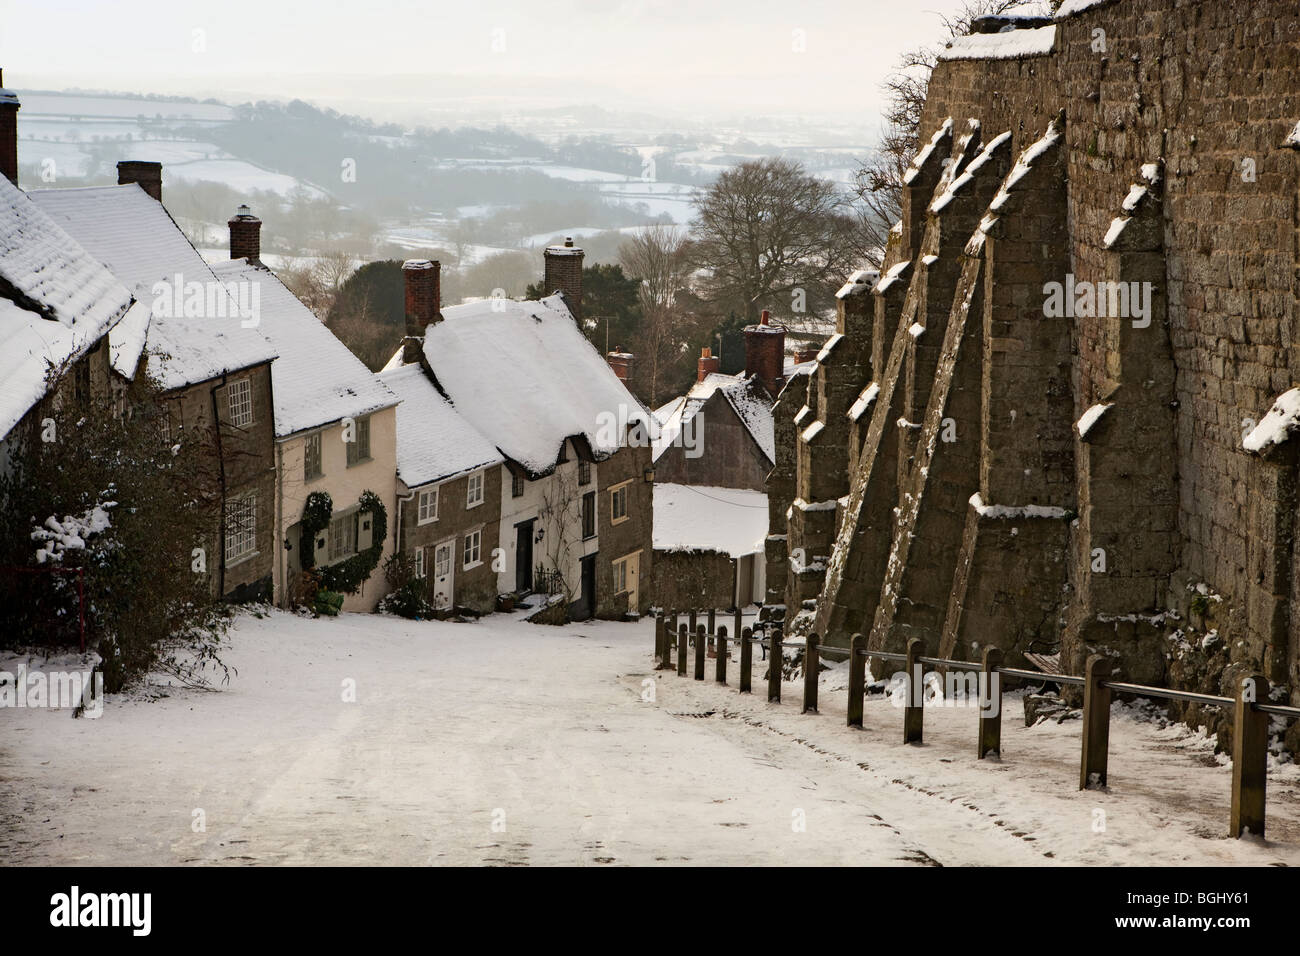 Winter on Gold Hill at Shaftesbury in Dorset, England - Stock Image